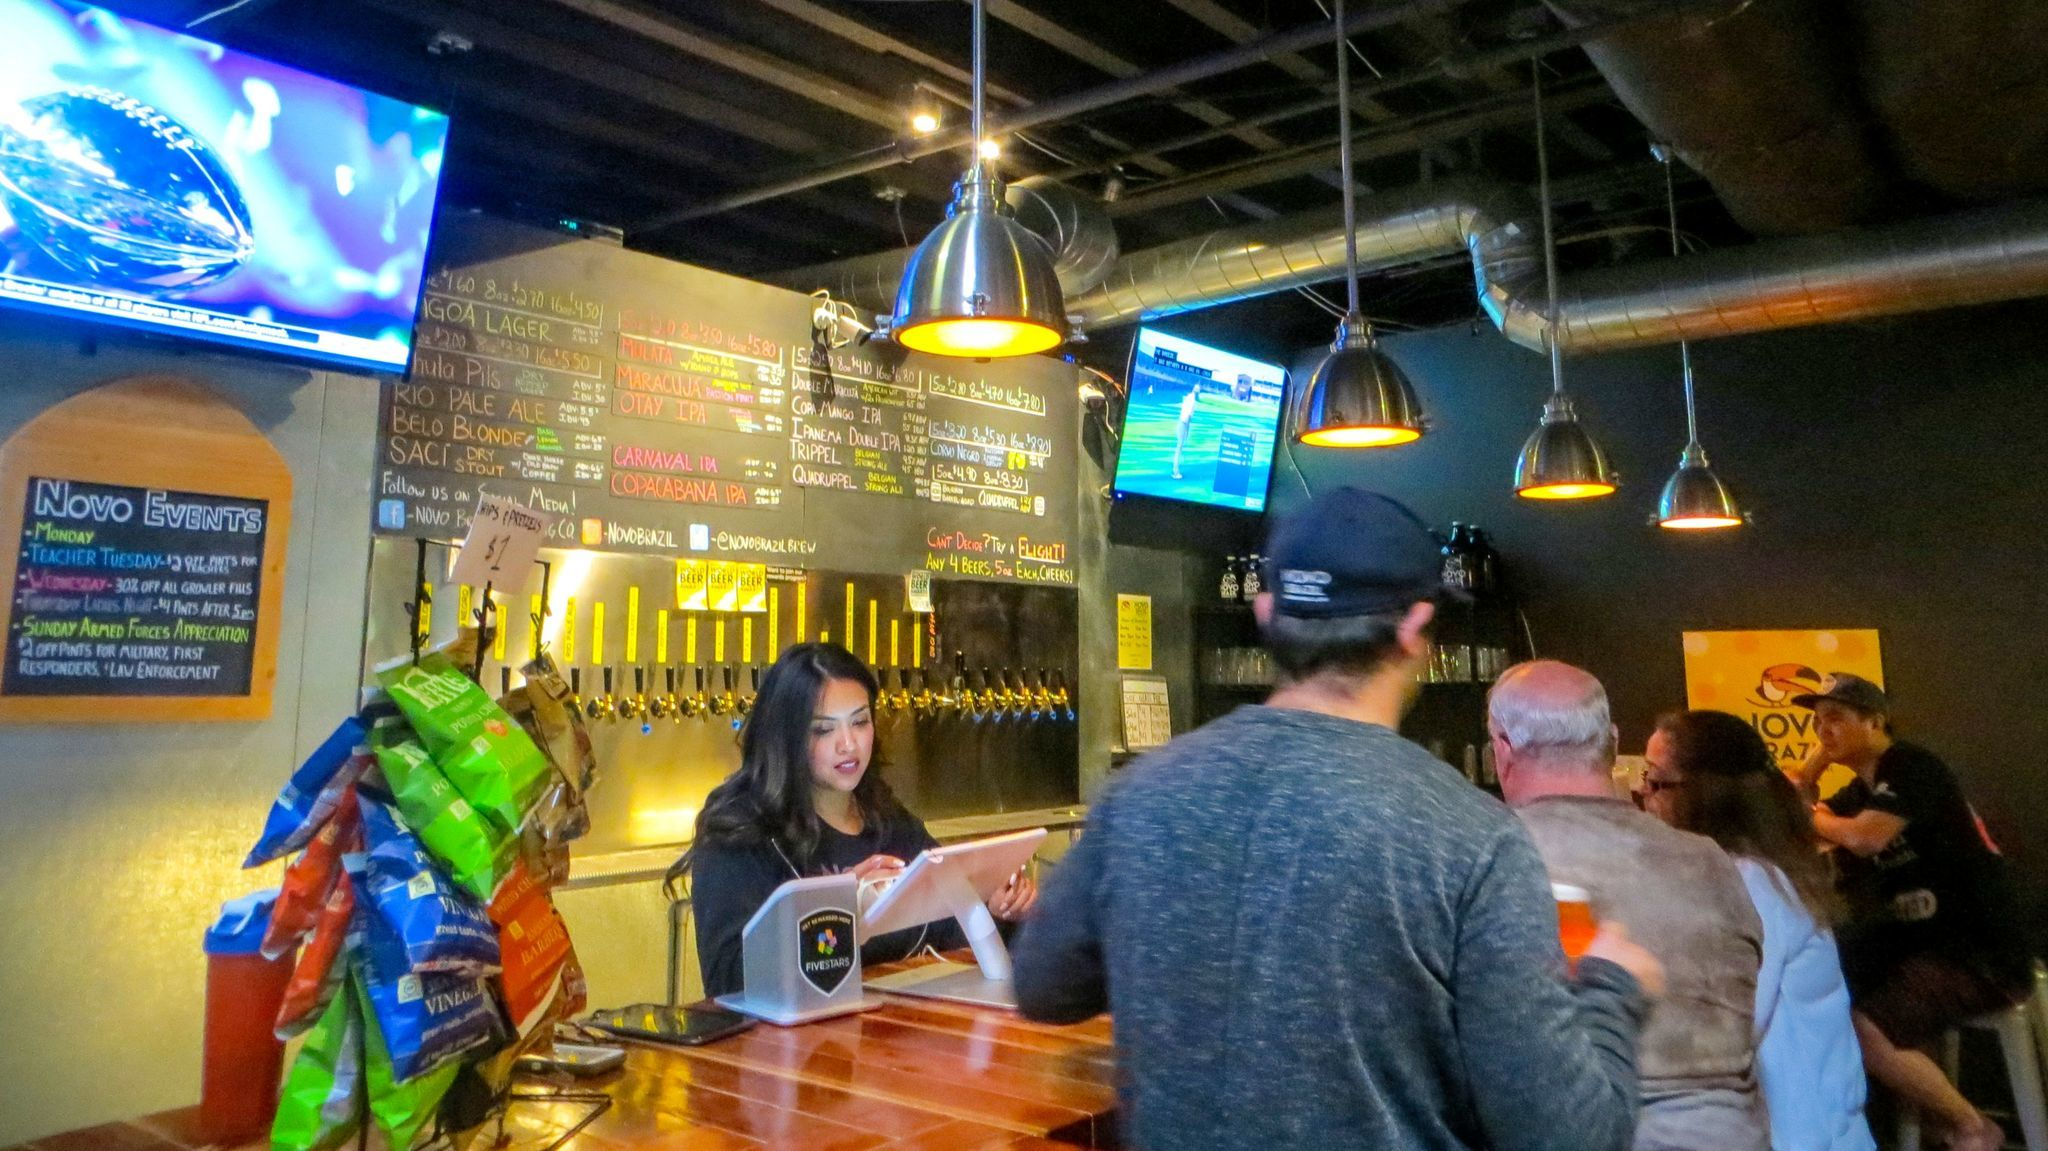 Bellying up to the bar at Novo Brazil Brewing in Chula Vista.